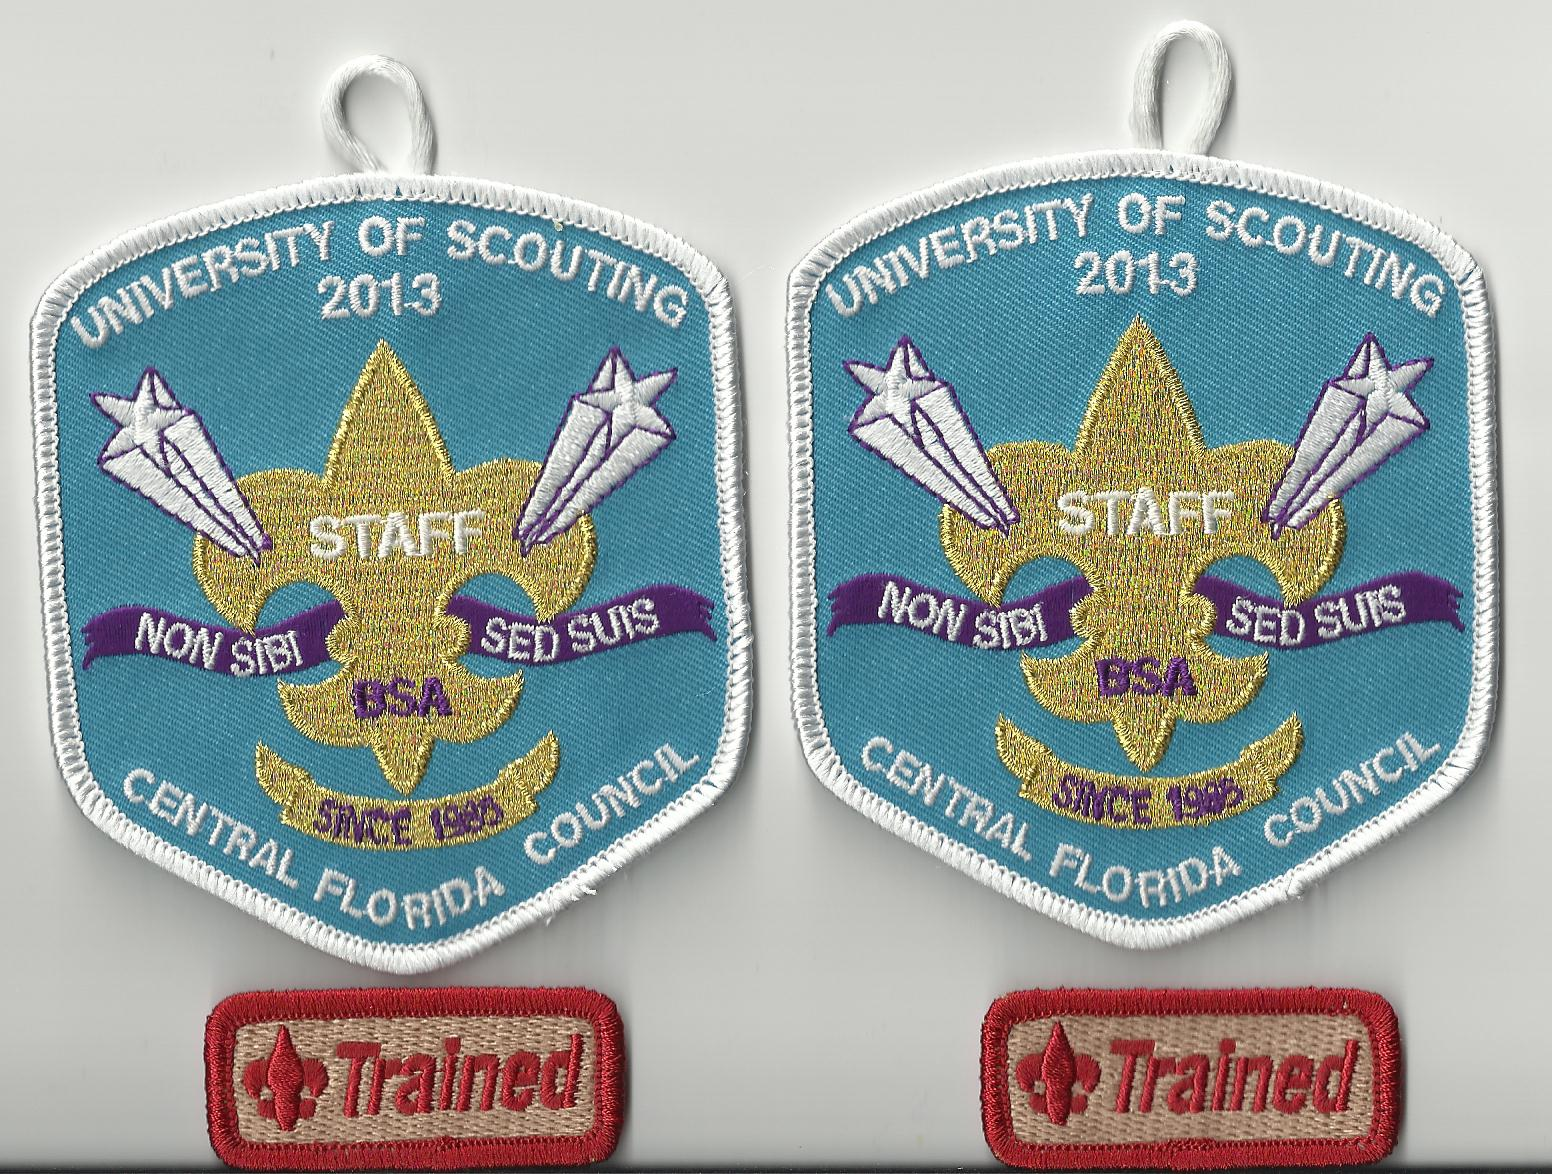 Patches from our dual Scouting endeavors